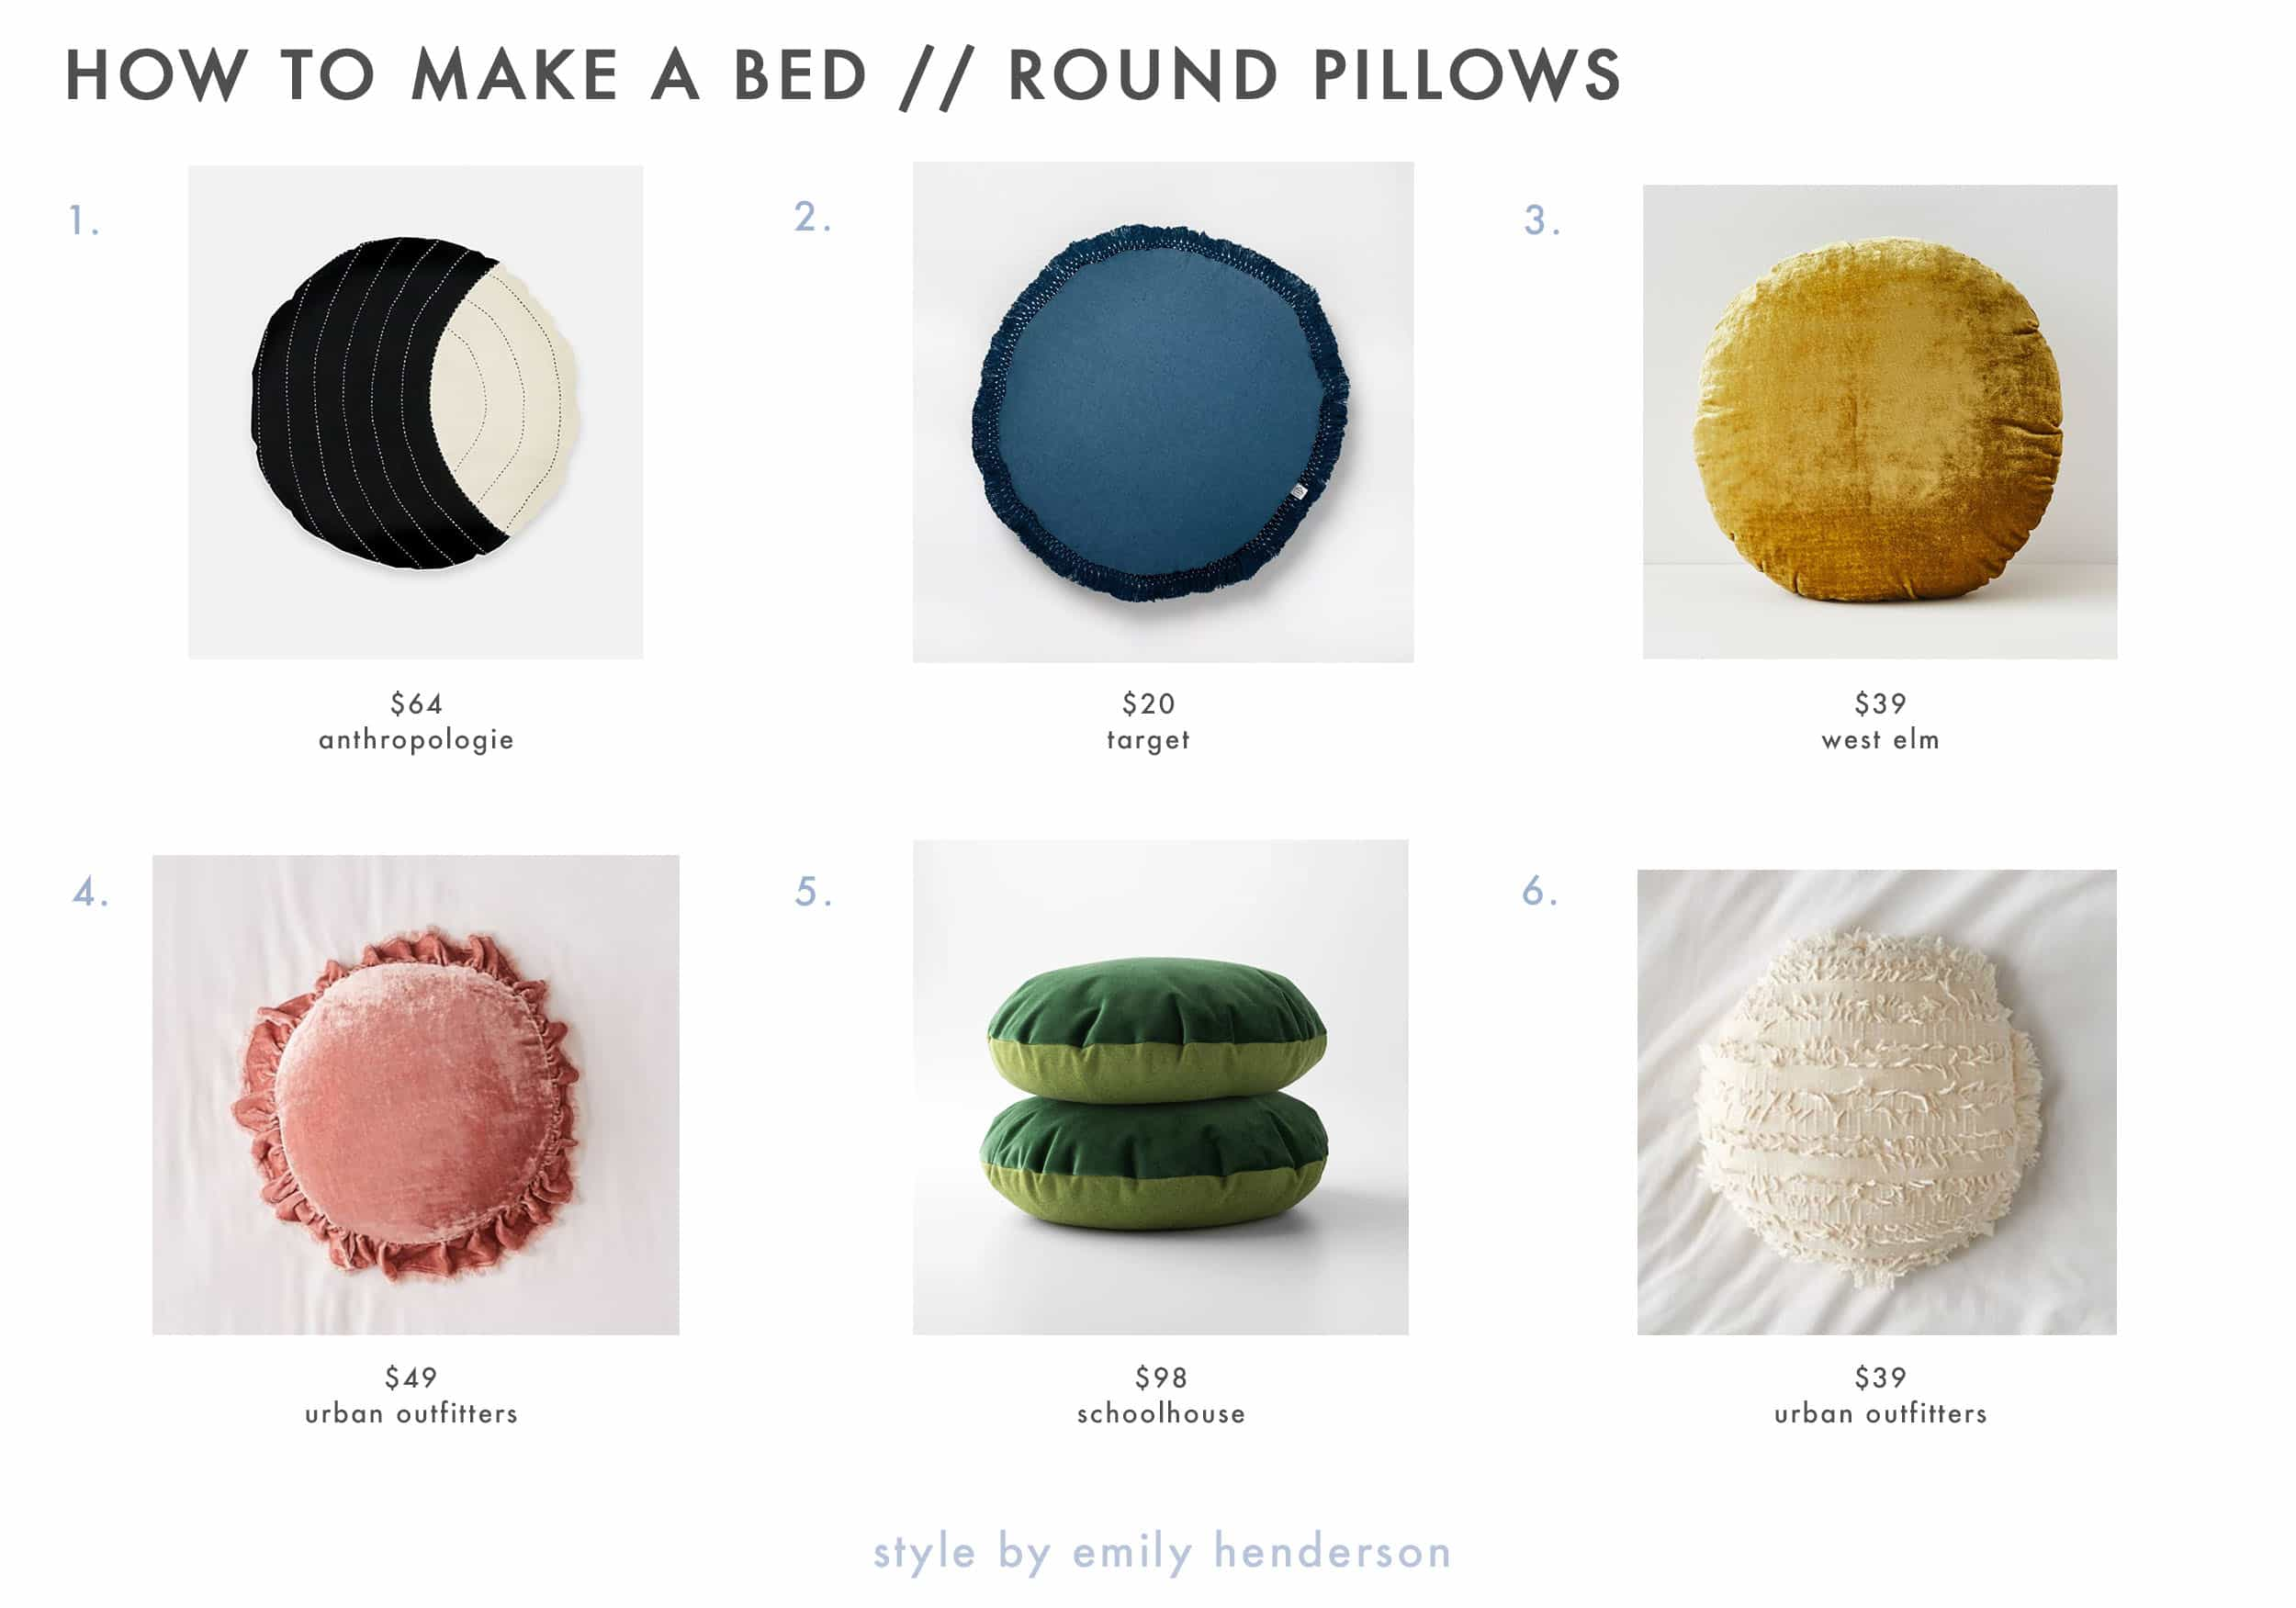 Emily Henderson How To Make A Bed Round Pillows